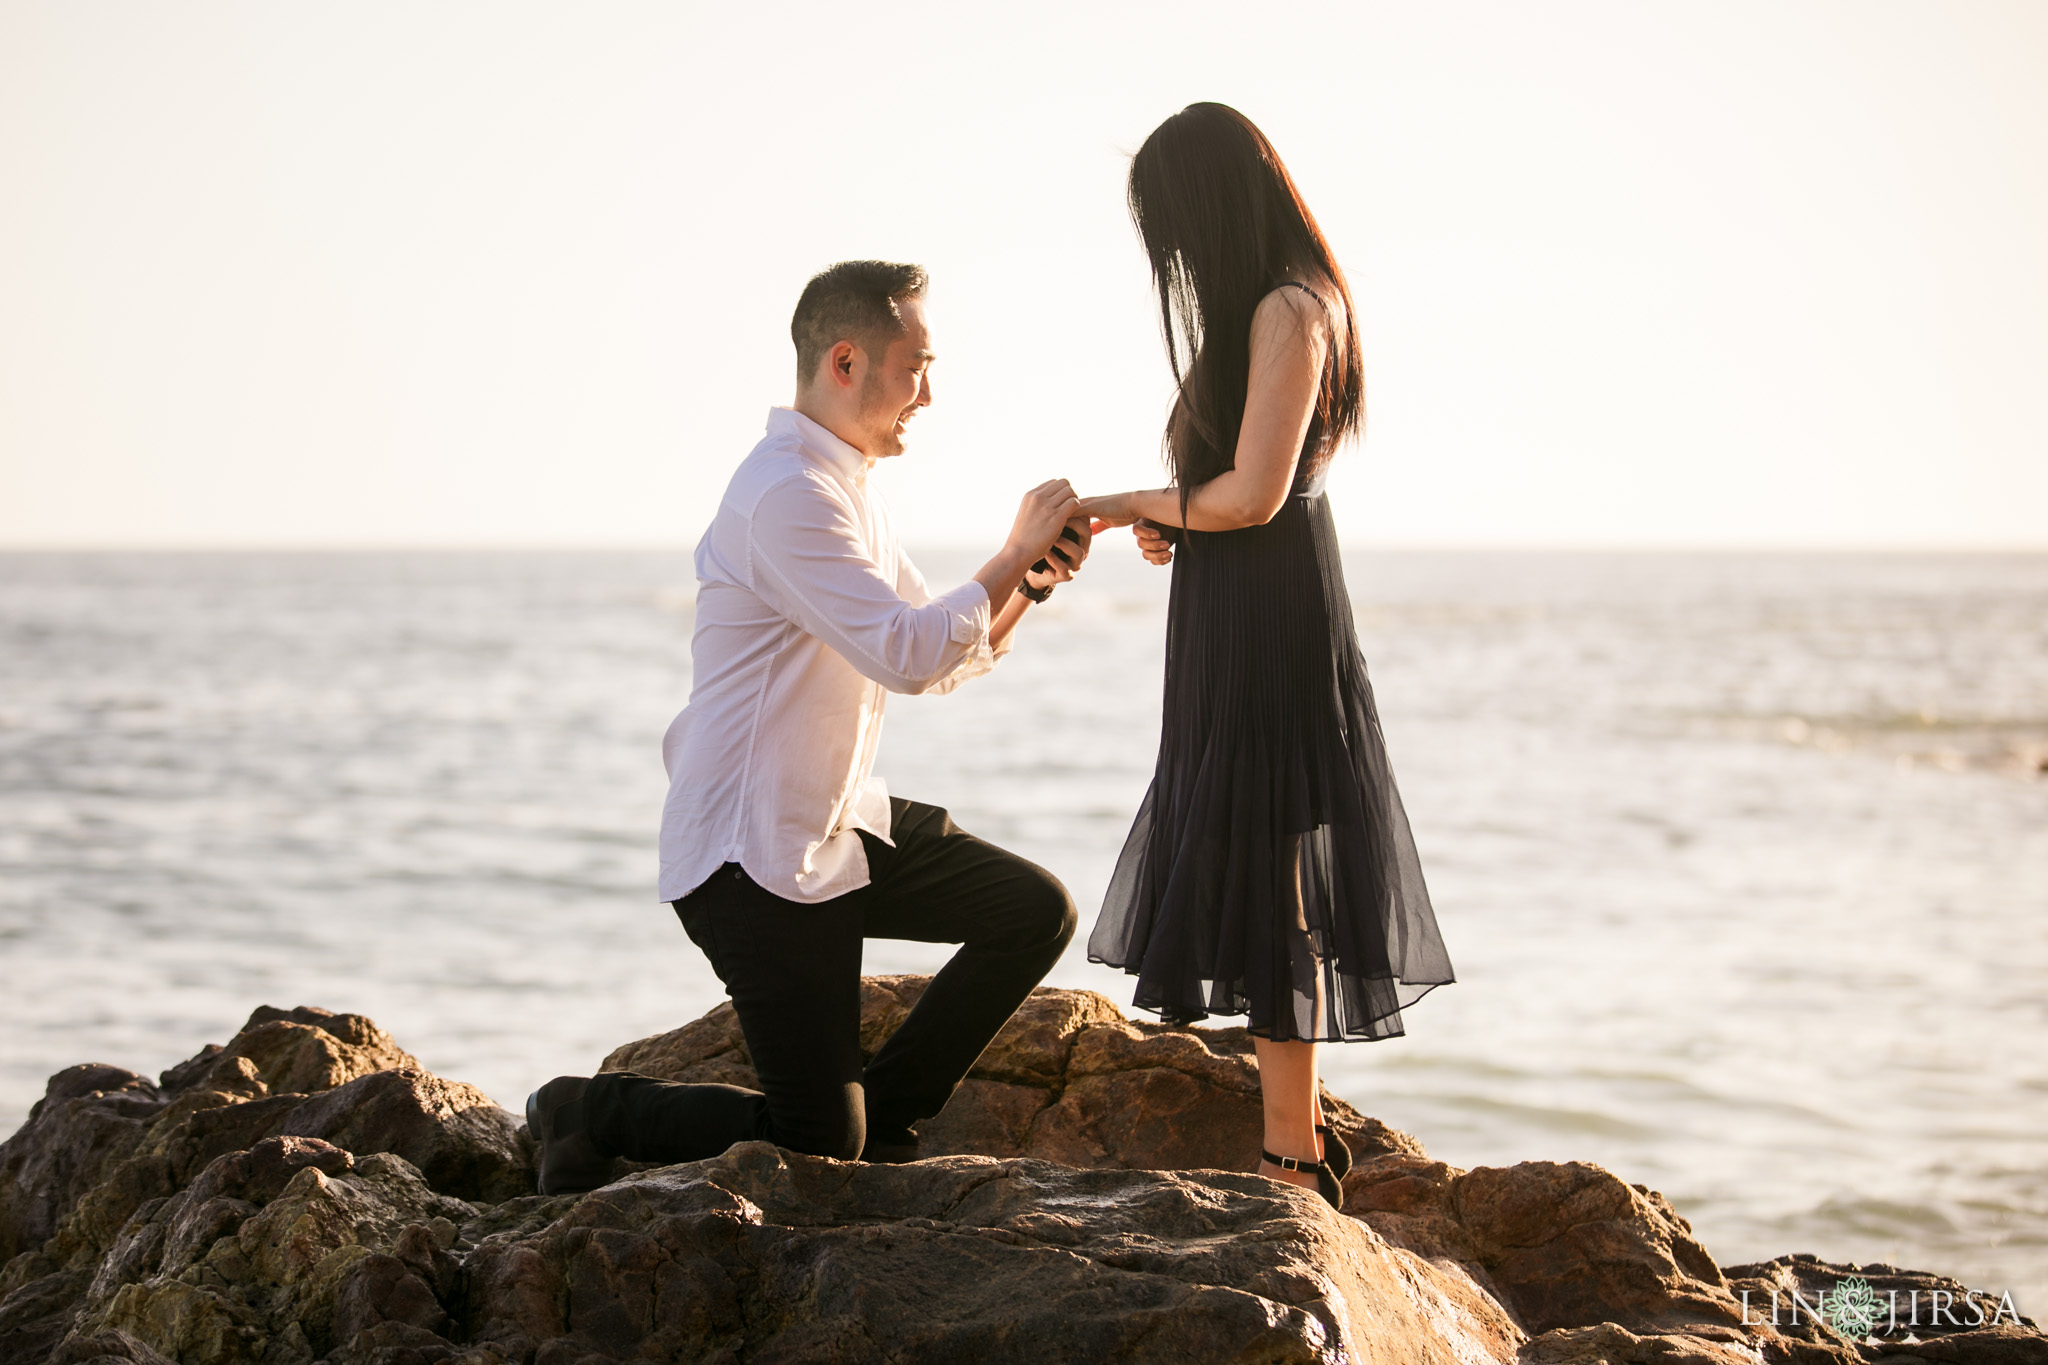 02 Heisler Beach Orange County Proposal Engagement Photography